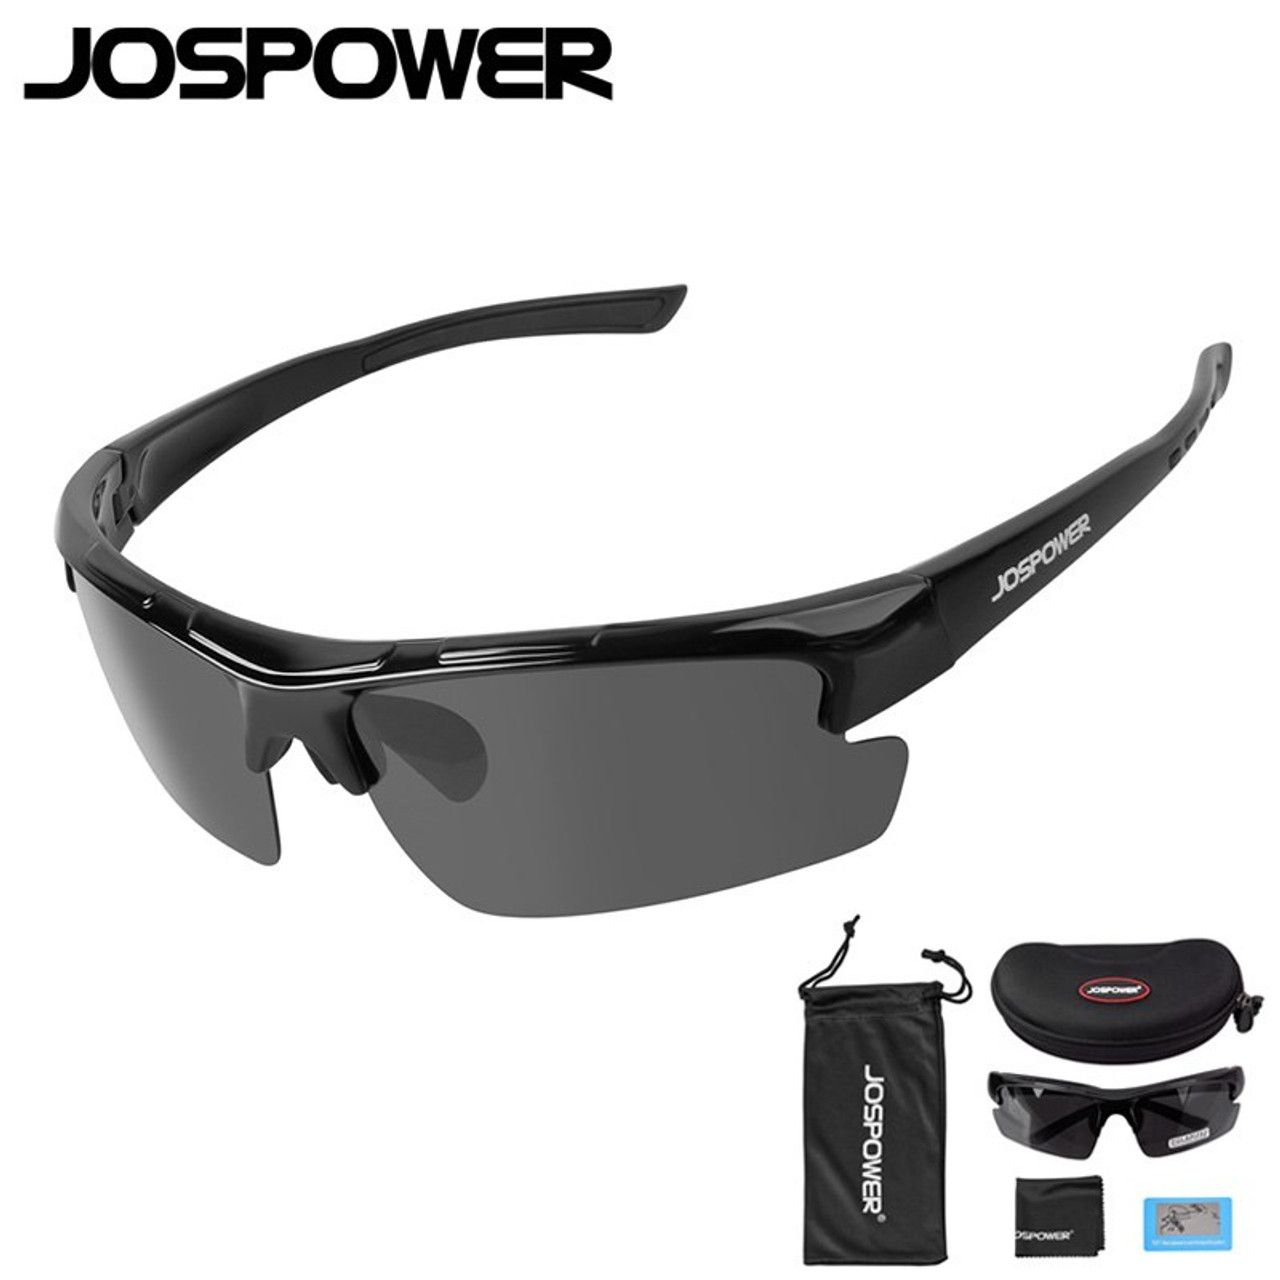 3438a3a675 ... JOSPOWER New Men Women Cycling Glasses Polarized UV 400 Fishing  Sunglasses Sport Climbing Hiking Driving Eyewear ...